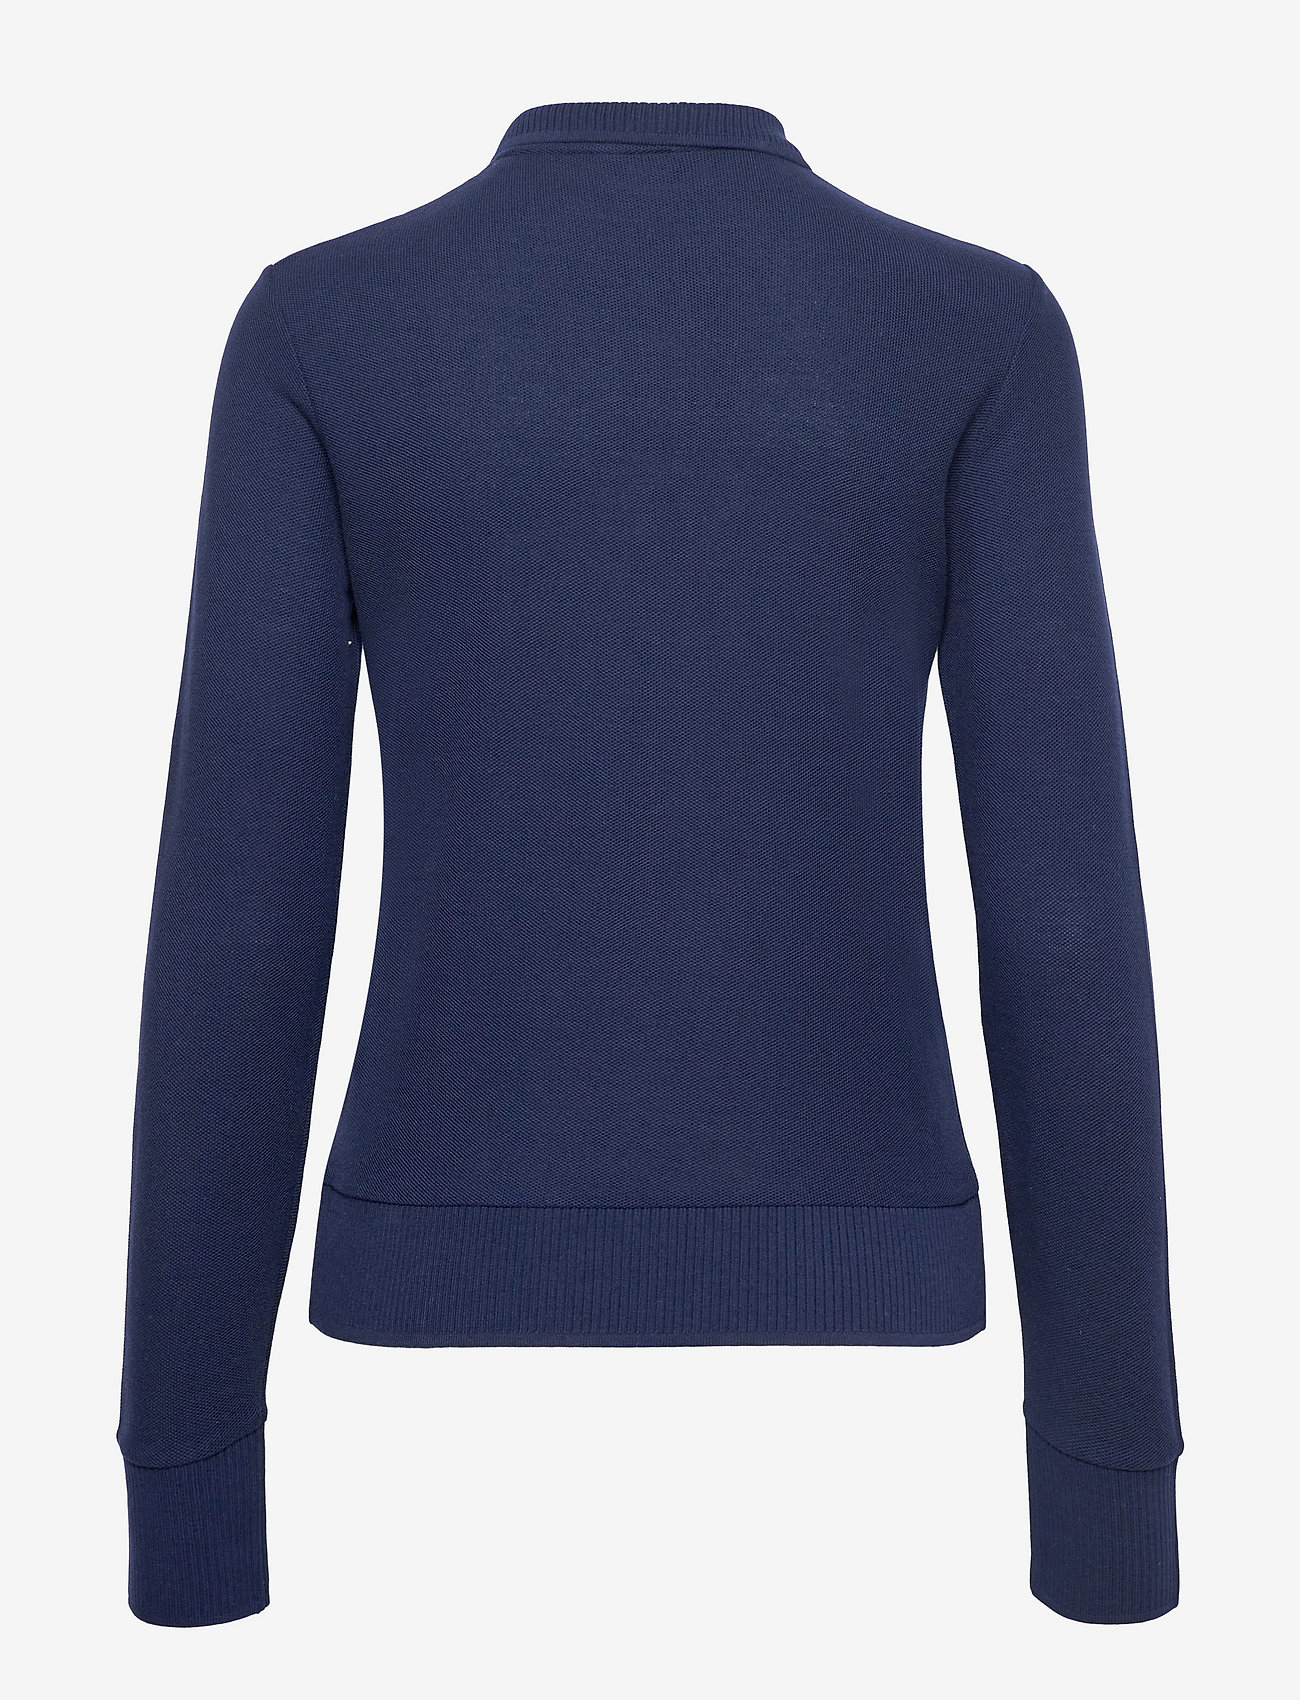 GANT - D1. CROWN EMBROIDERY POLO PIQUE - t-shirt & tops - evening blue - 1